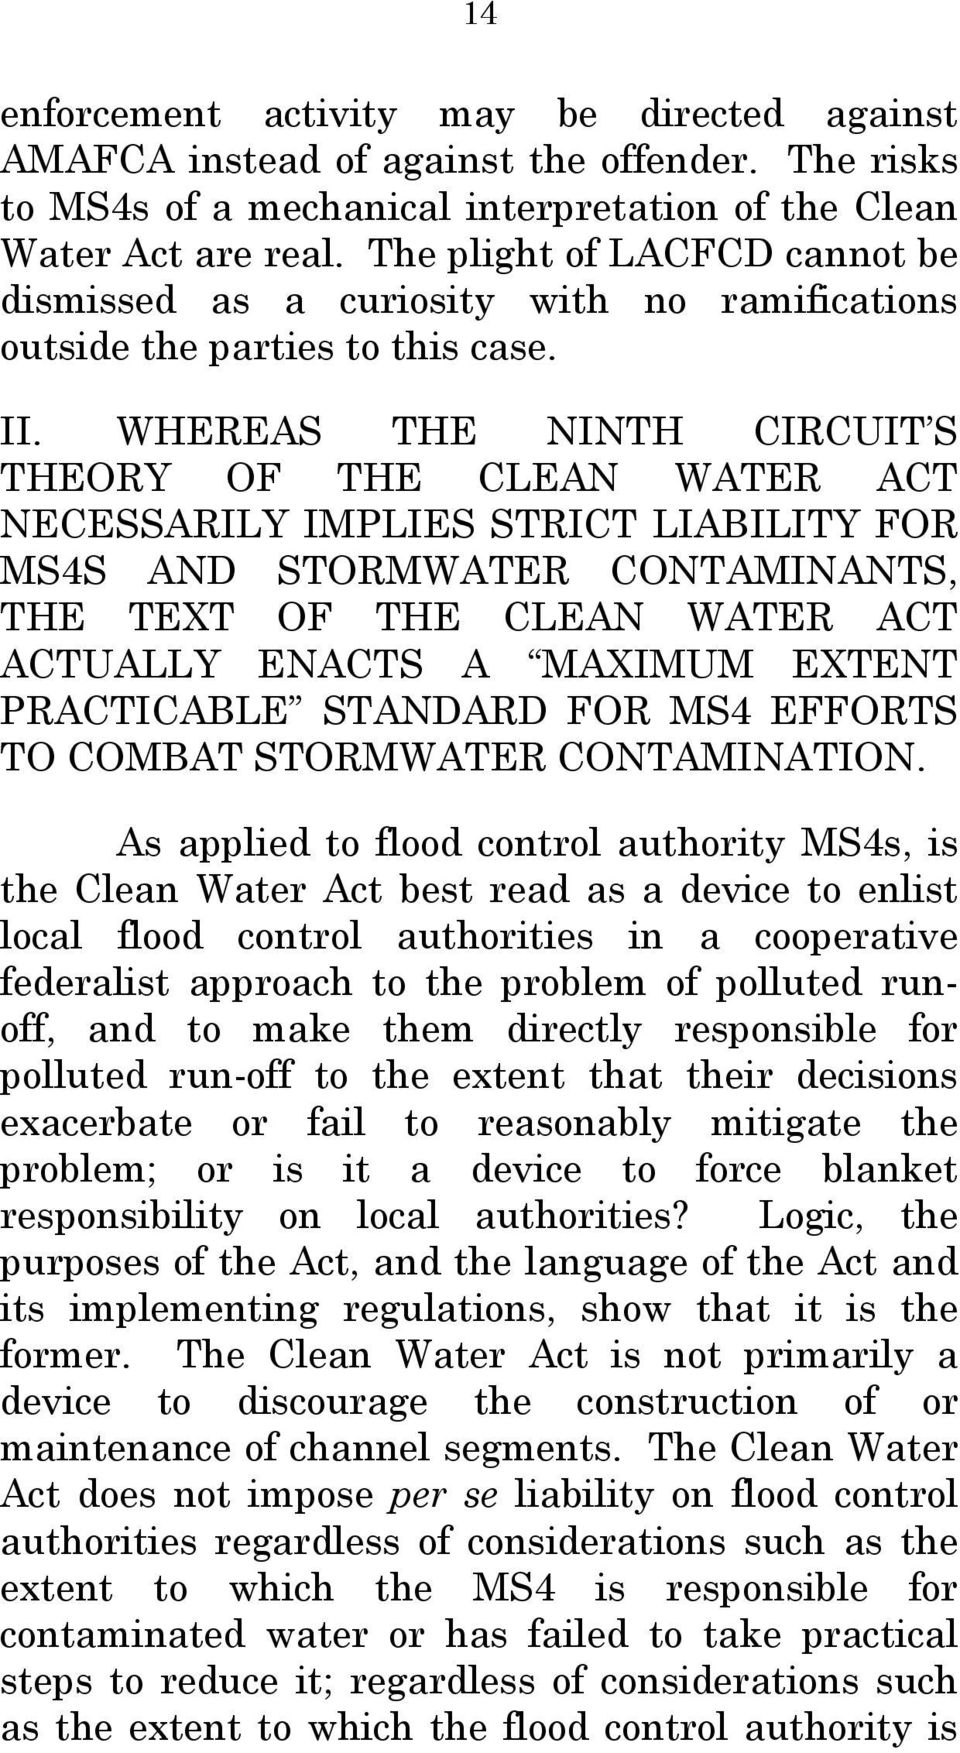 WHEREAS THE NINTH CIRCUIT S THEORY OF THE CLEAN WATER ACT NECESSARILY IMPLIES STRICT LIABILITY FOR MS4S AND STORMWATER CONTAMINANTS, THE TEXT OF THE CLEAN WATER ACT ACTUALLY ENACTS A MAXIMUM EXTENT